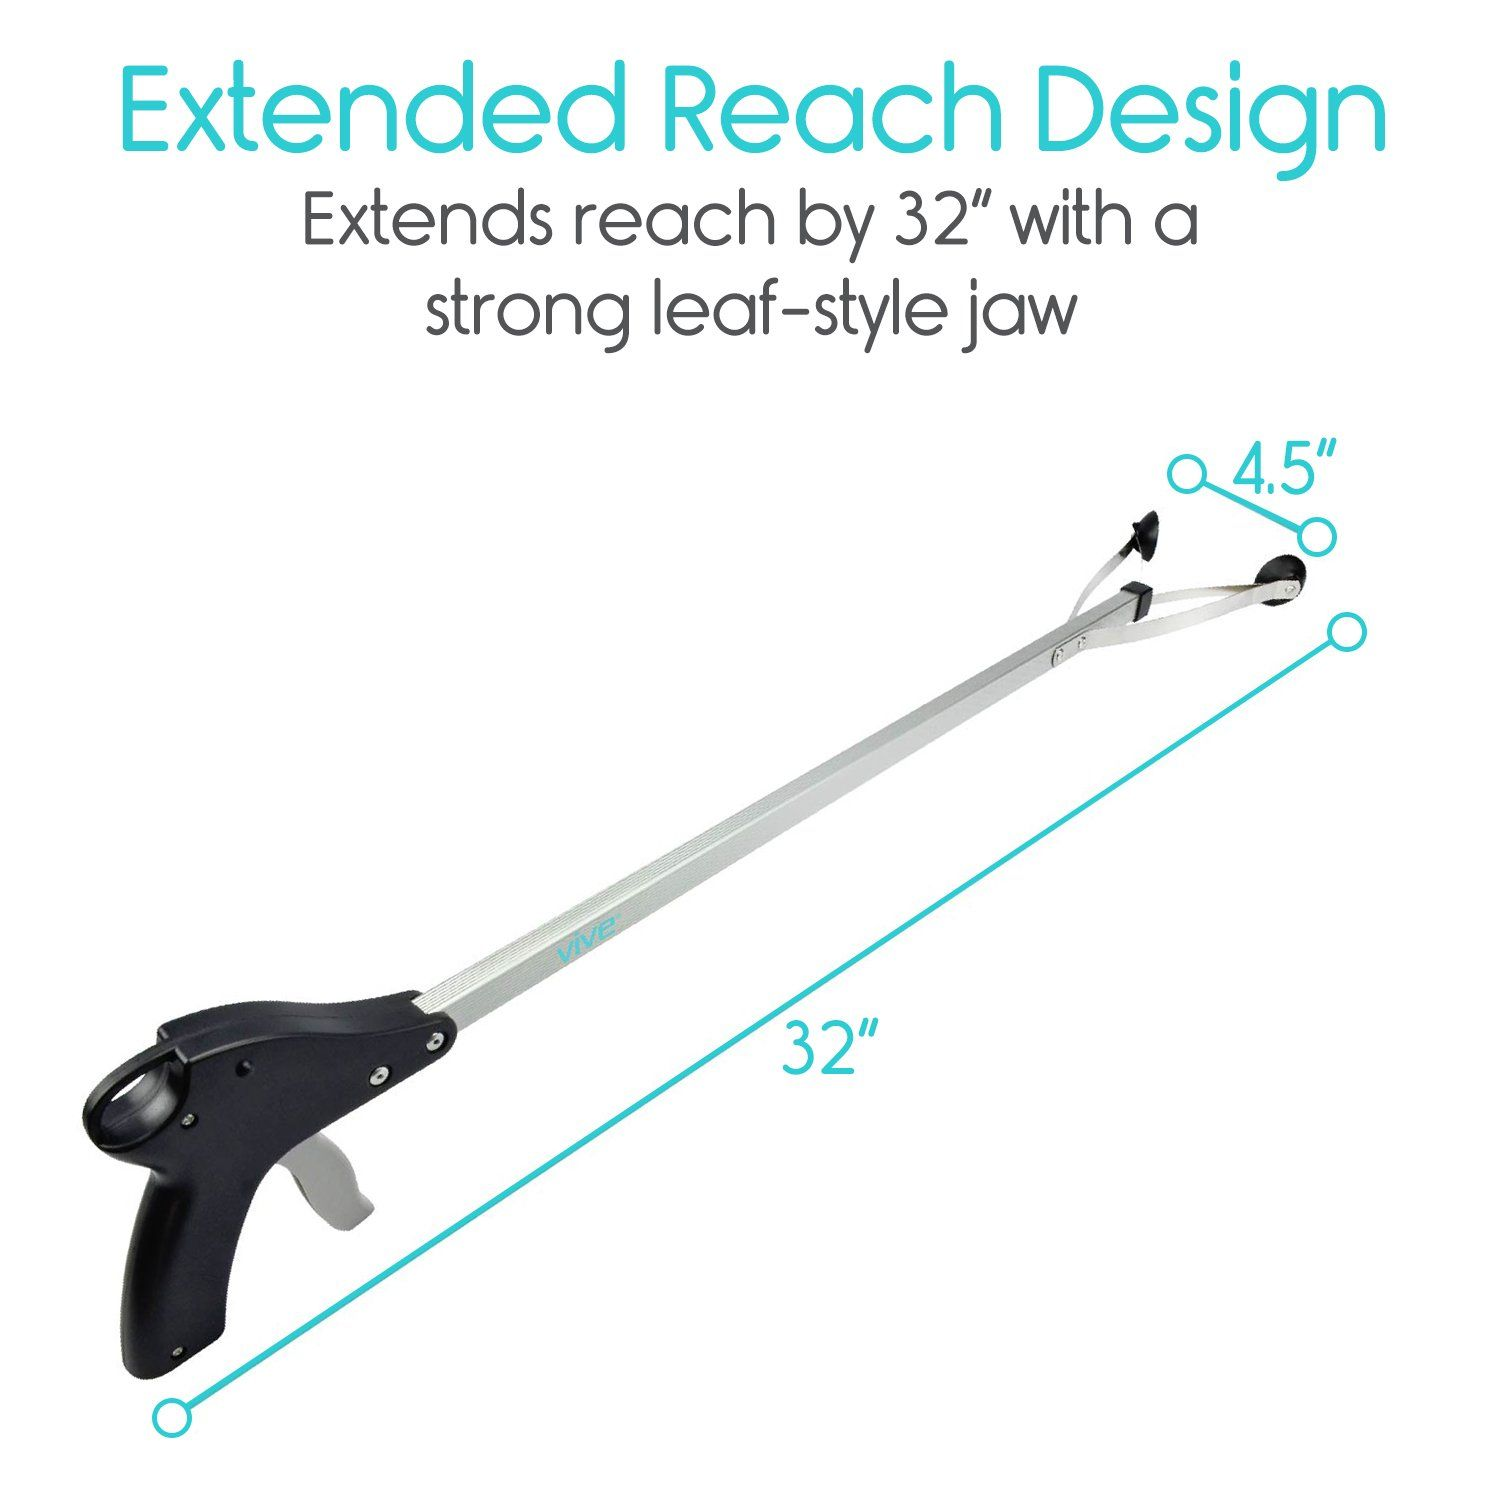 Suction Cup Reacher Grabber By Vive 32 Heavy Duty Mobility Grip